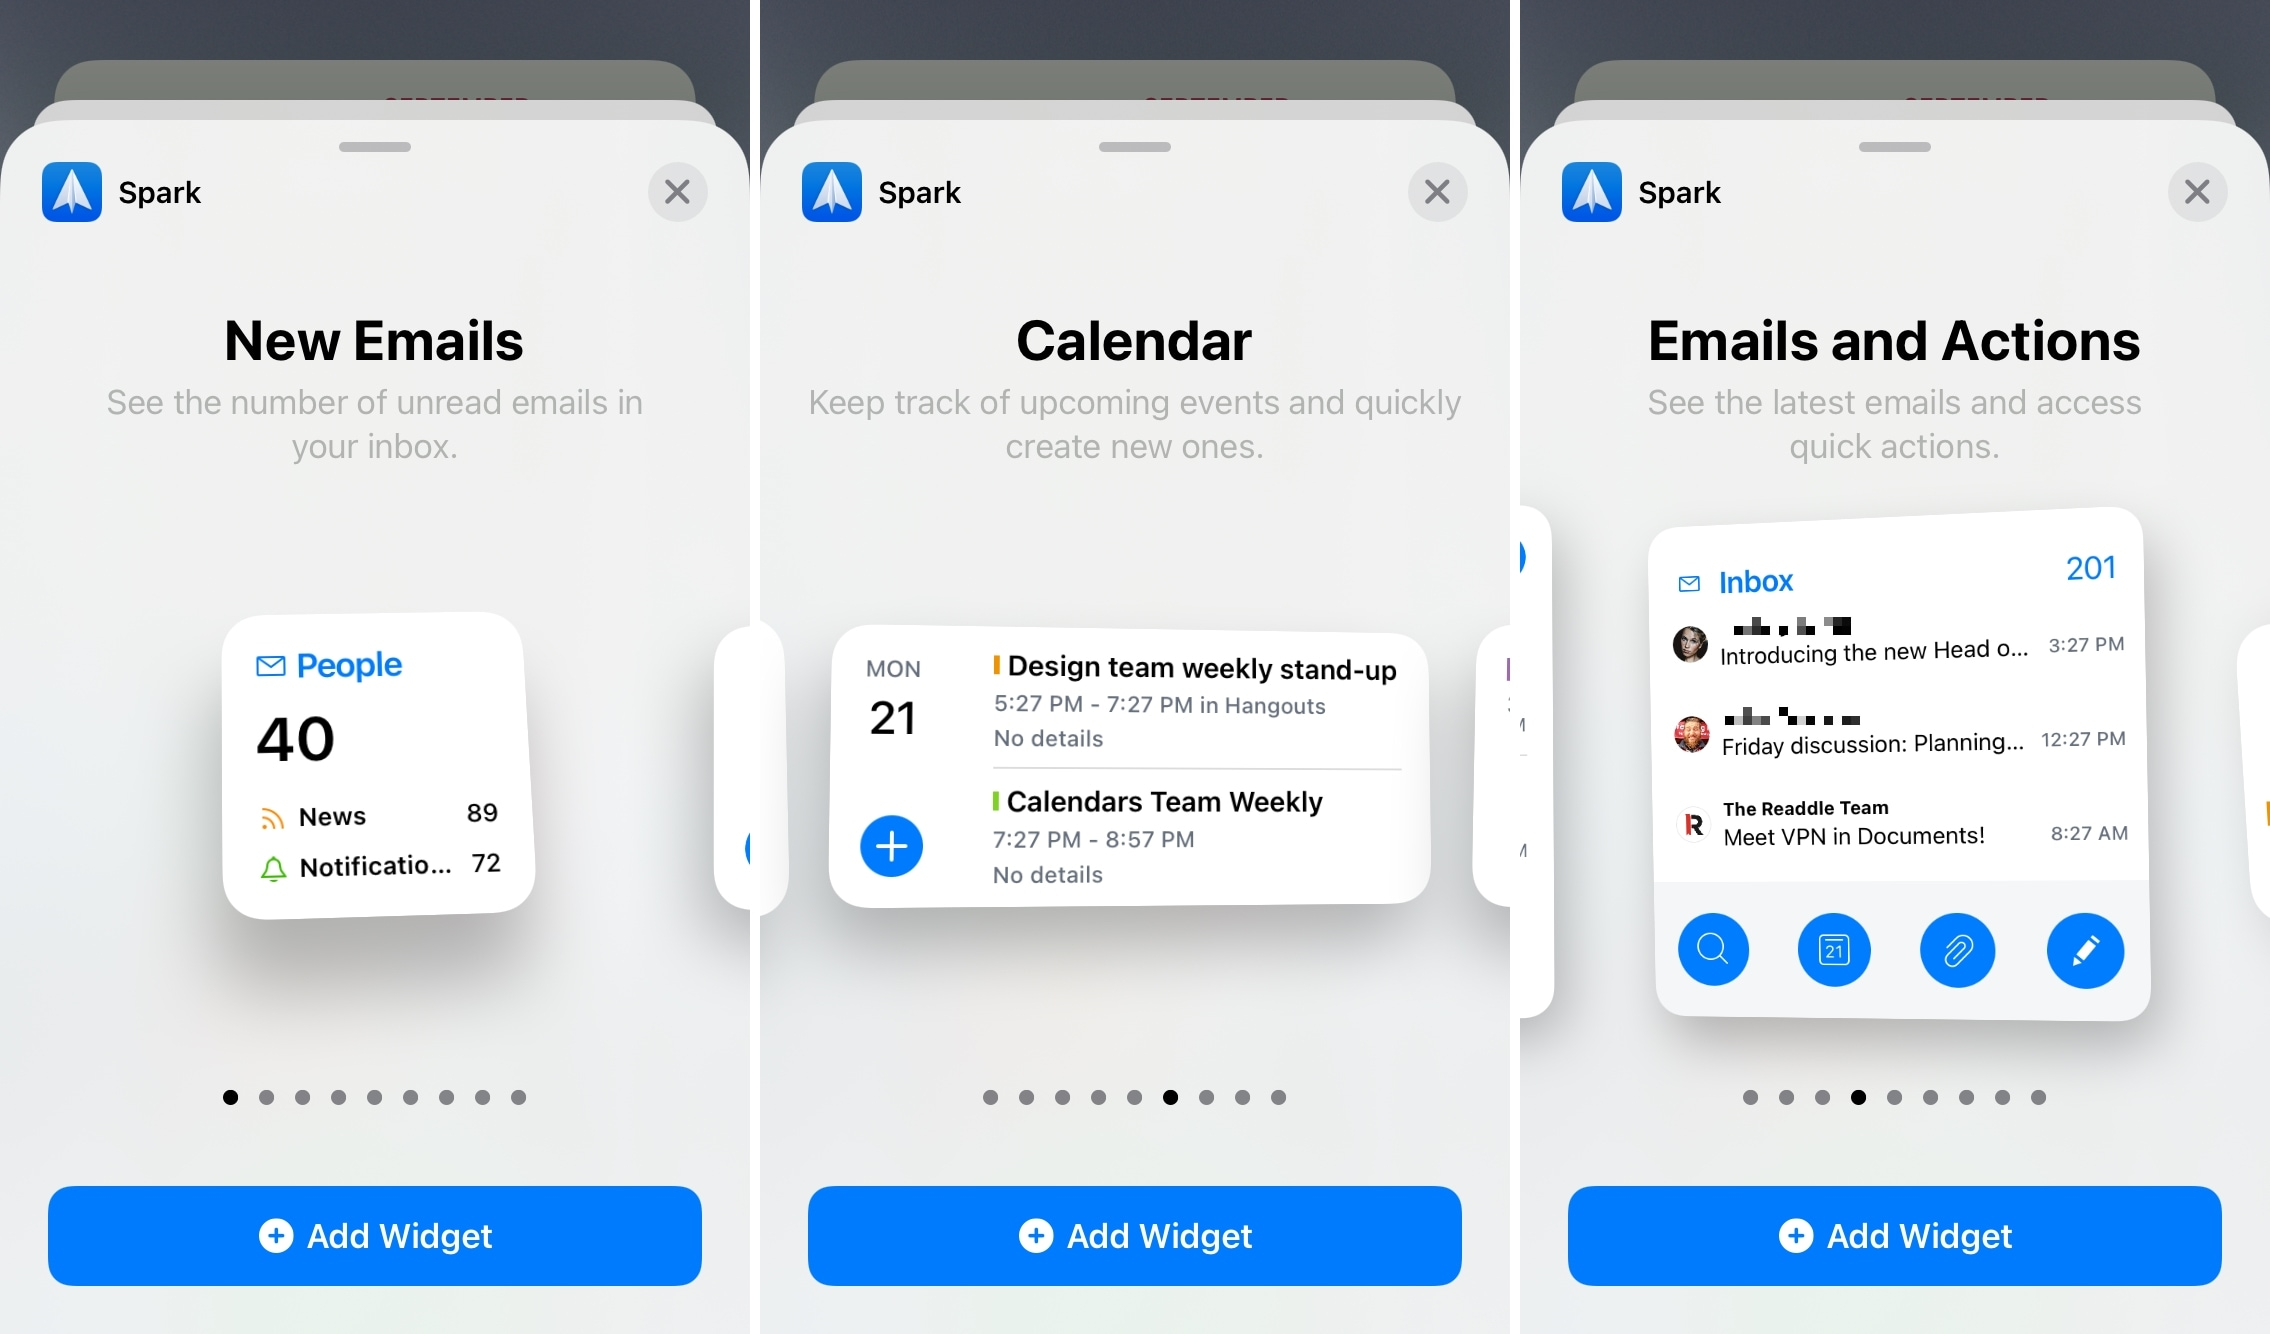 Spark Mail Home Screen Widgets for iPhone